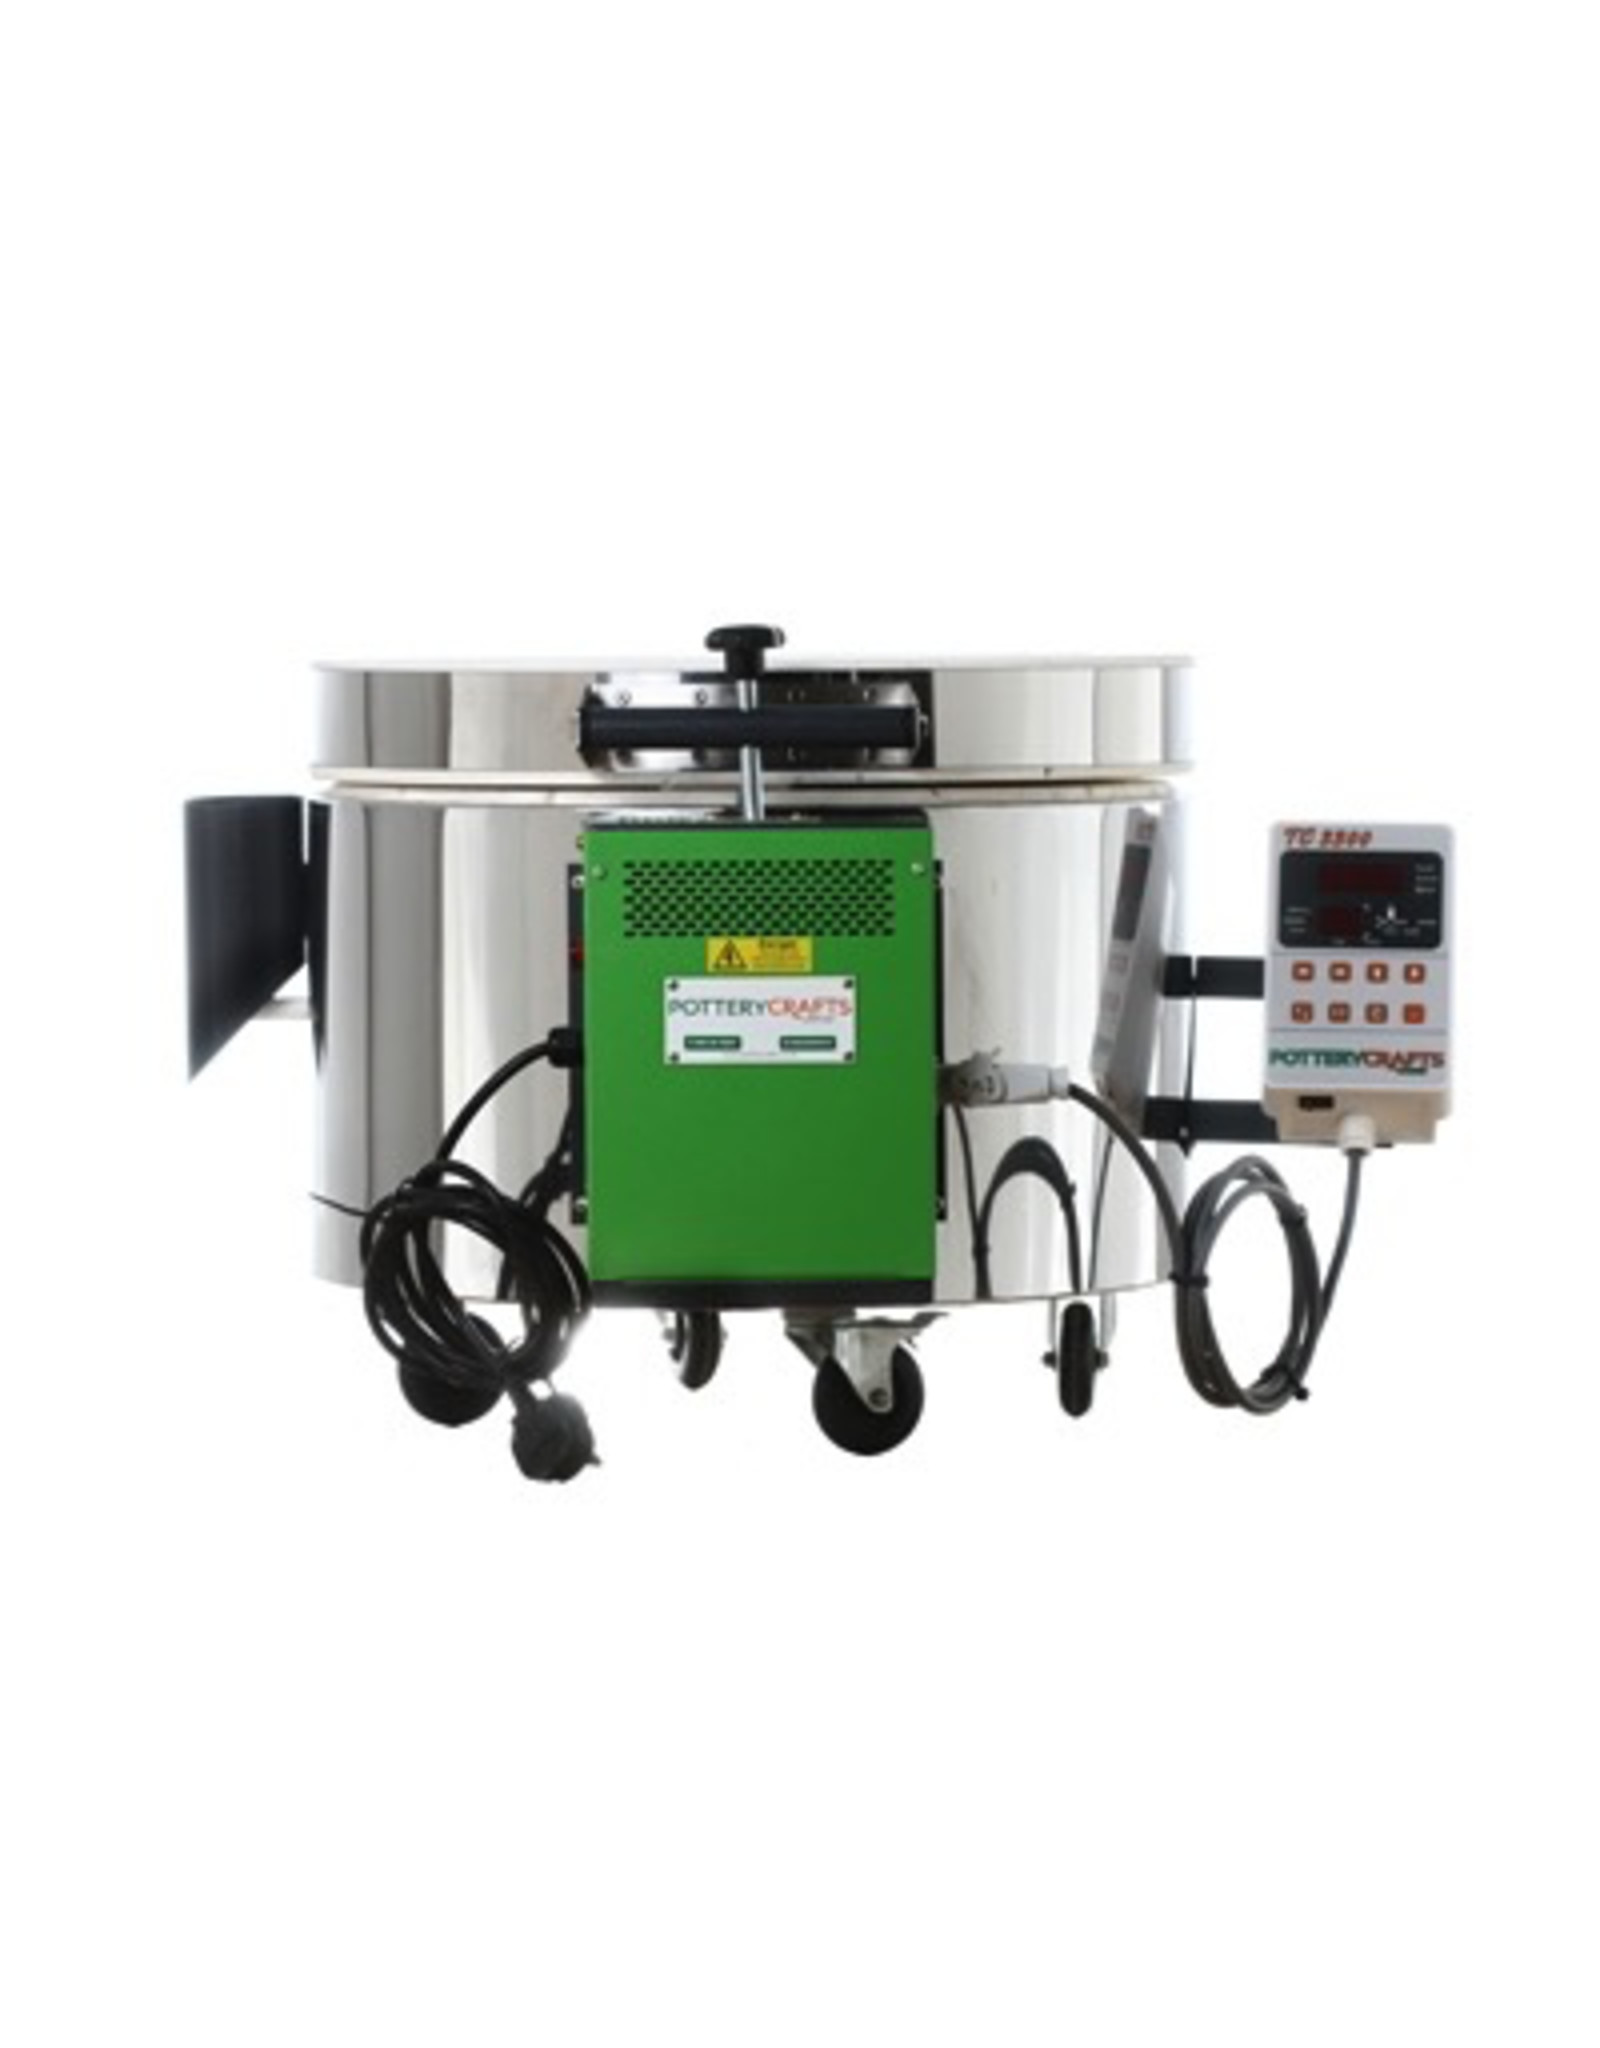 Potterycrafts Potterycrafts Mercury 30lt Electric Kiln includes controller and furniture